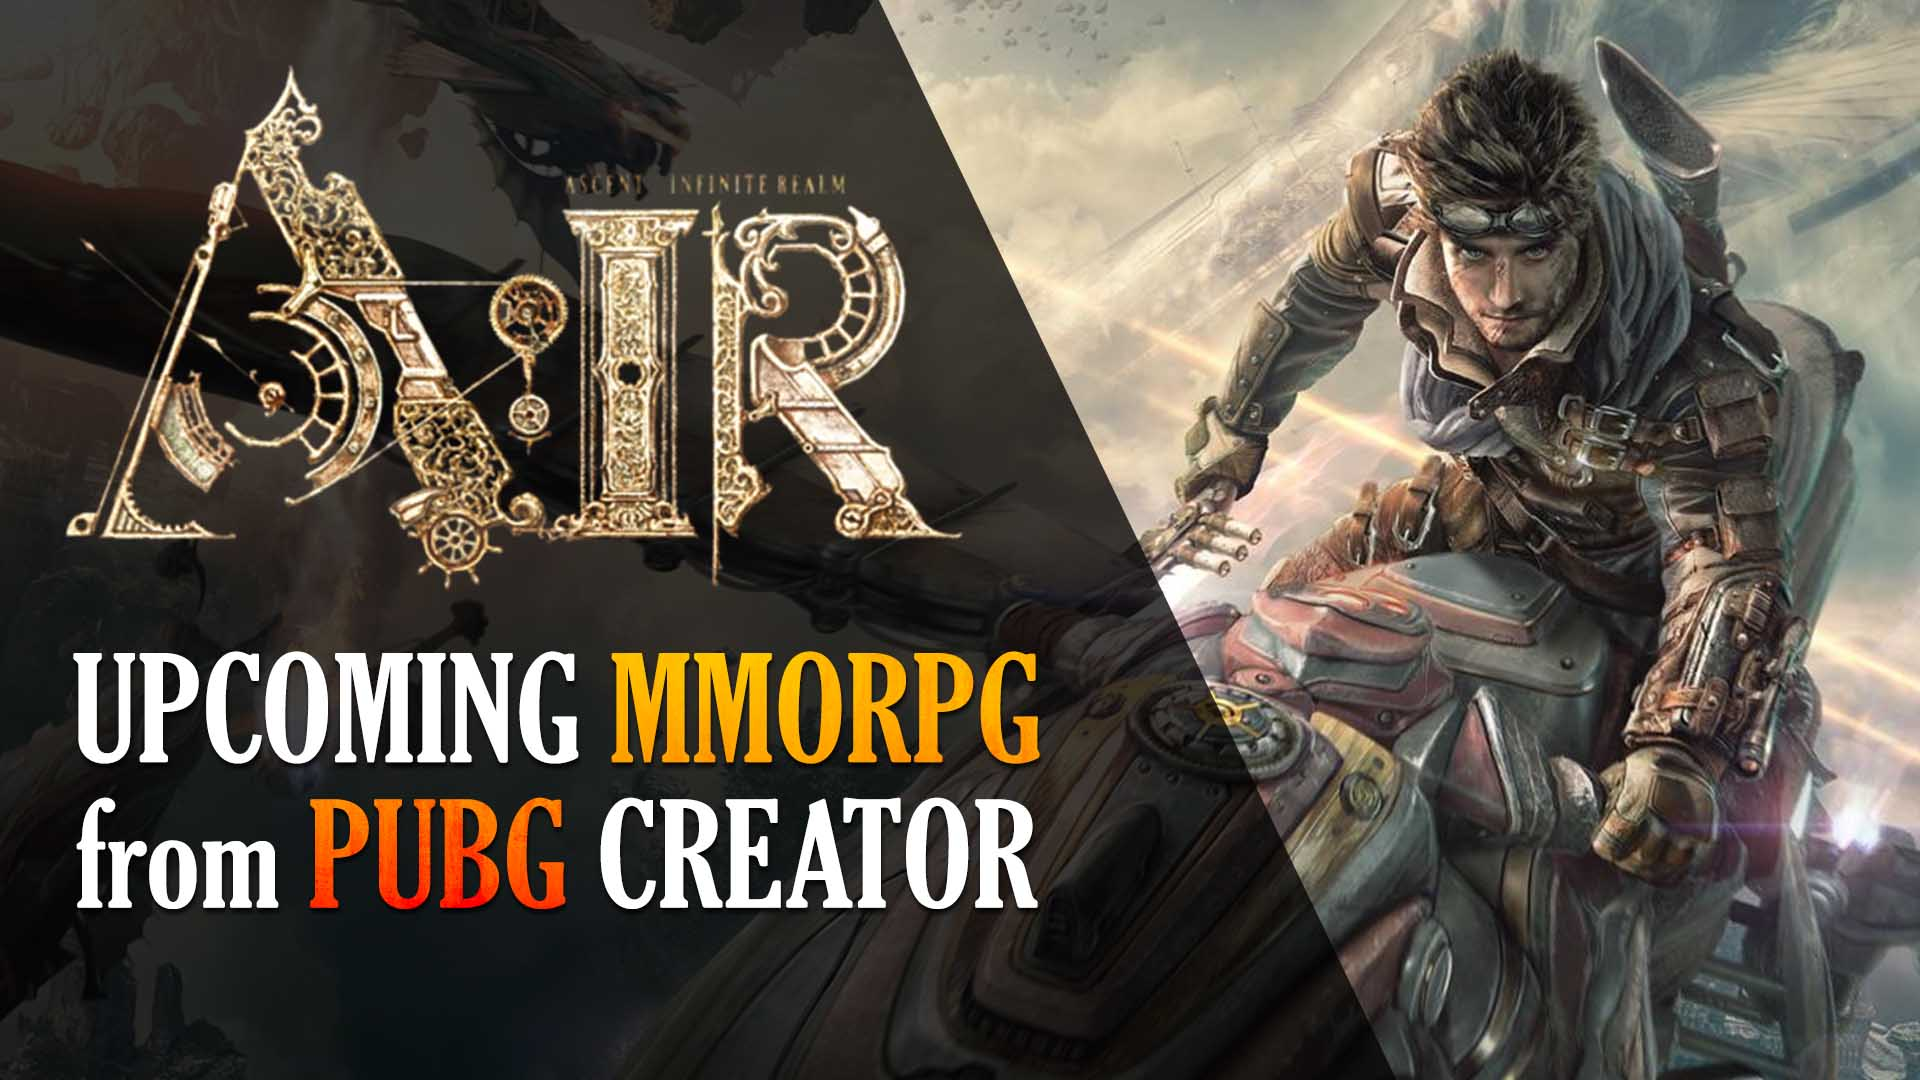 Pubg Wallpaper Creator: PUBG Maker Announces A.I.R. MMORPG!